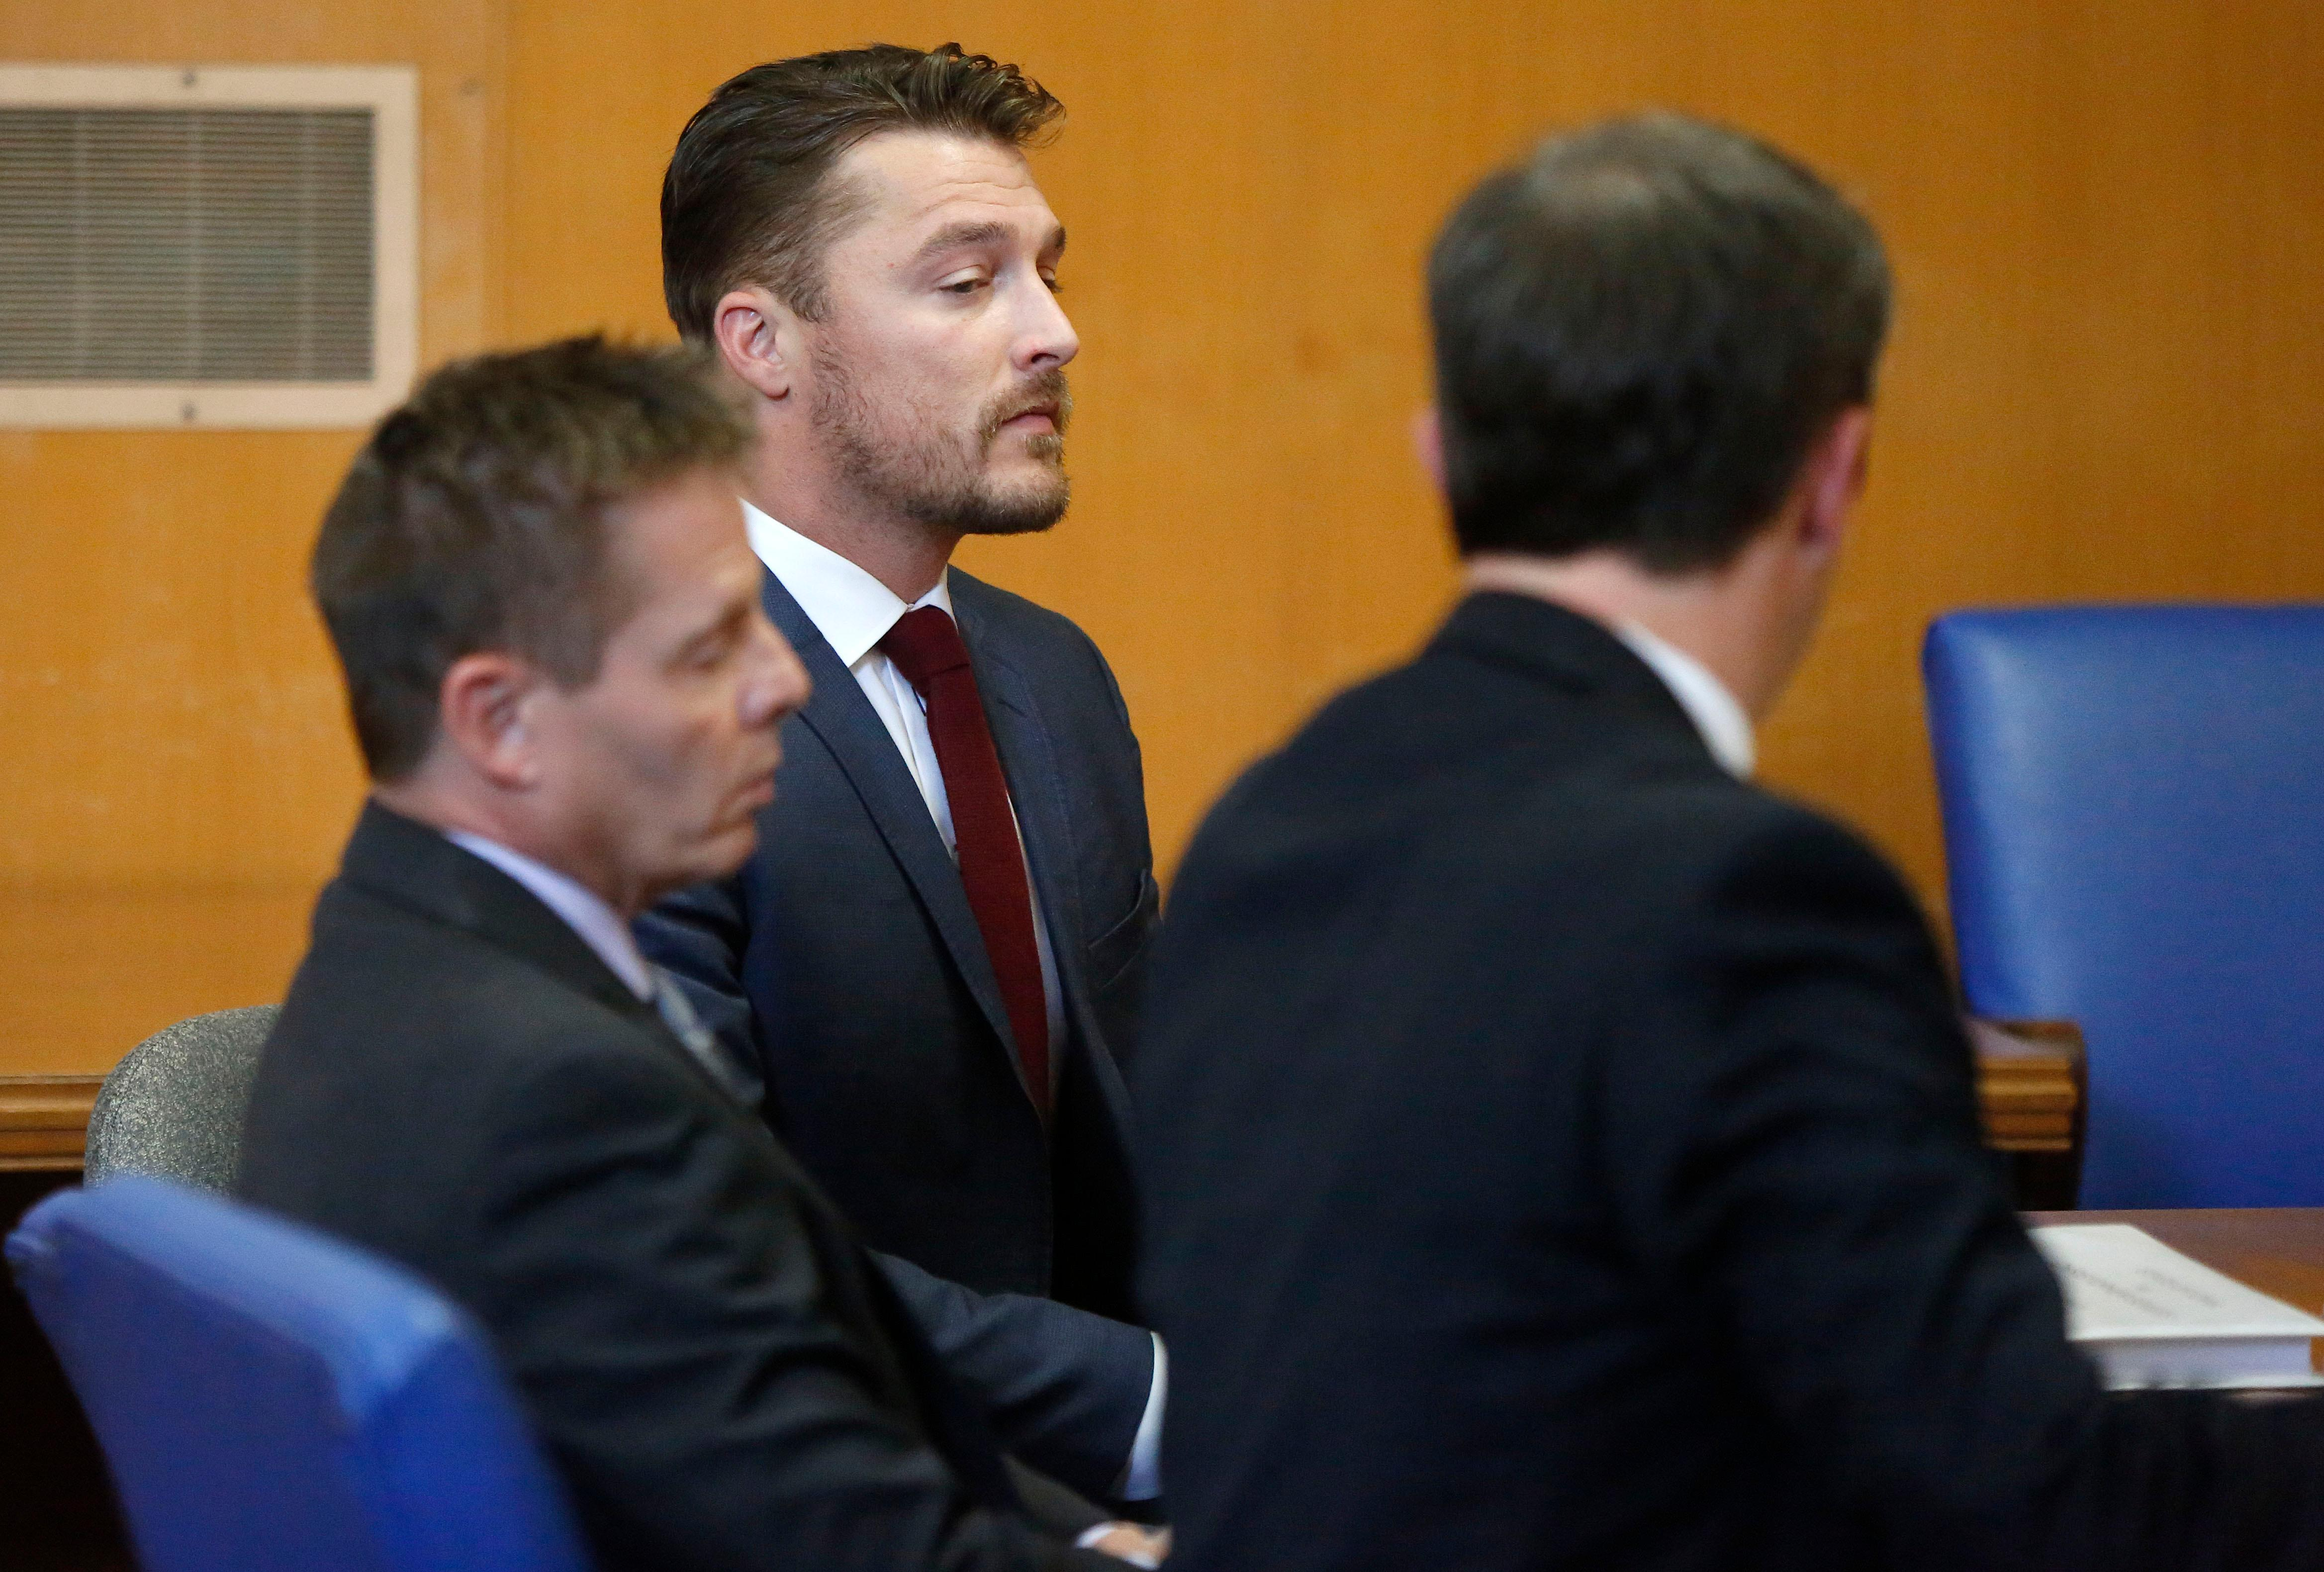 Chris Soules appears for a hearing with is lawyers Robert Montgomery and Brandon Brown in Buchanan County District Court Thursday, Sept. 14, 2017, in Independence, Iowa. Reality TV star Soules is charged with leaving the scene in a fatal April crash near Aurora, Iowa. (MATTHEW PUTNEY, The Courier /POOL)